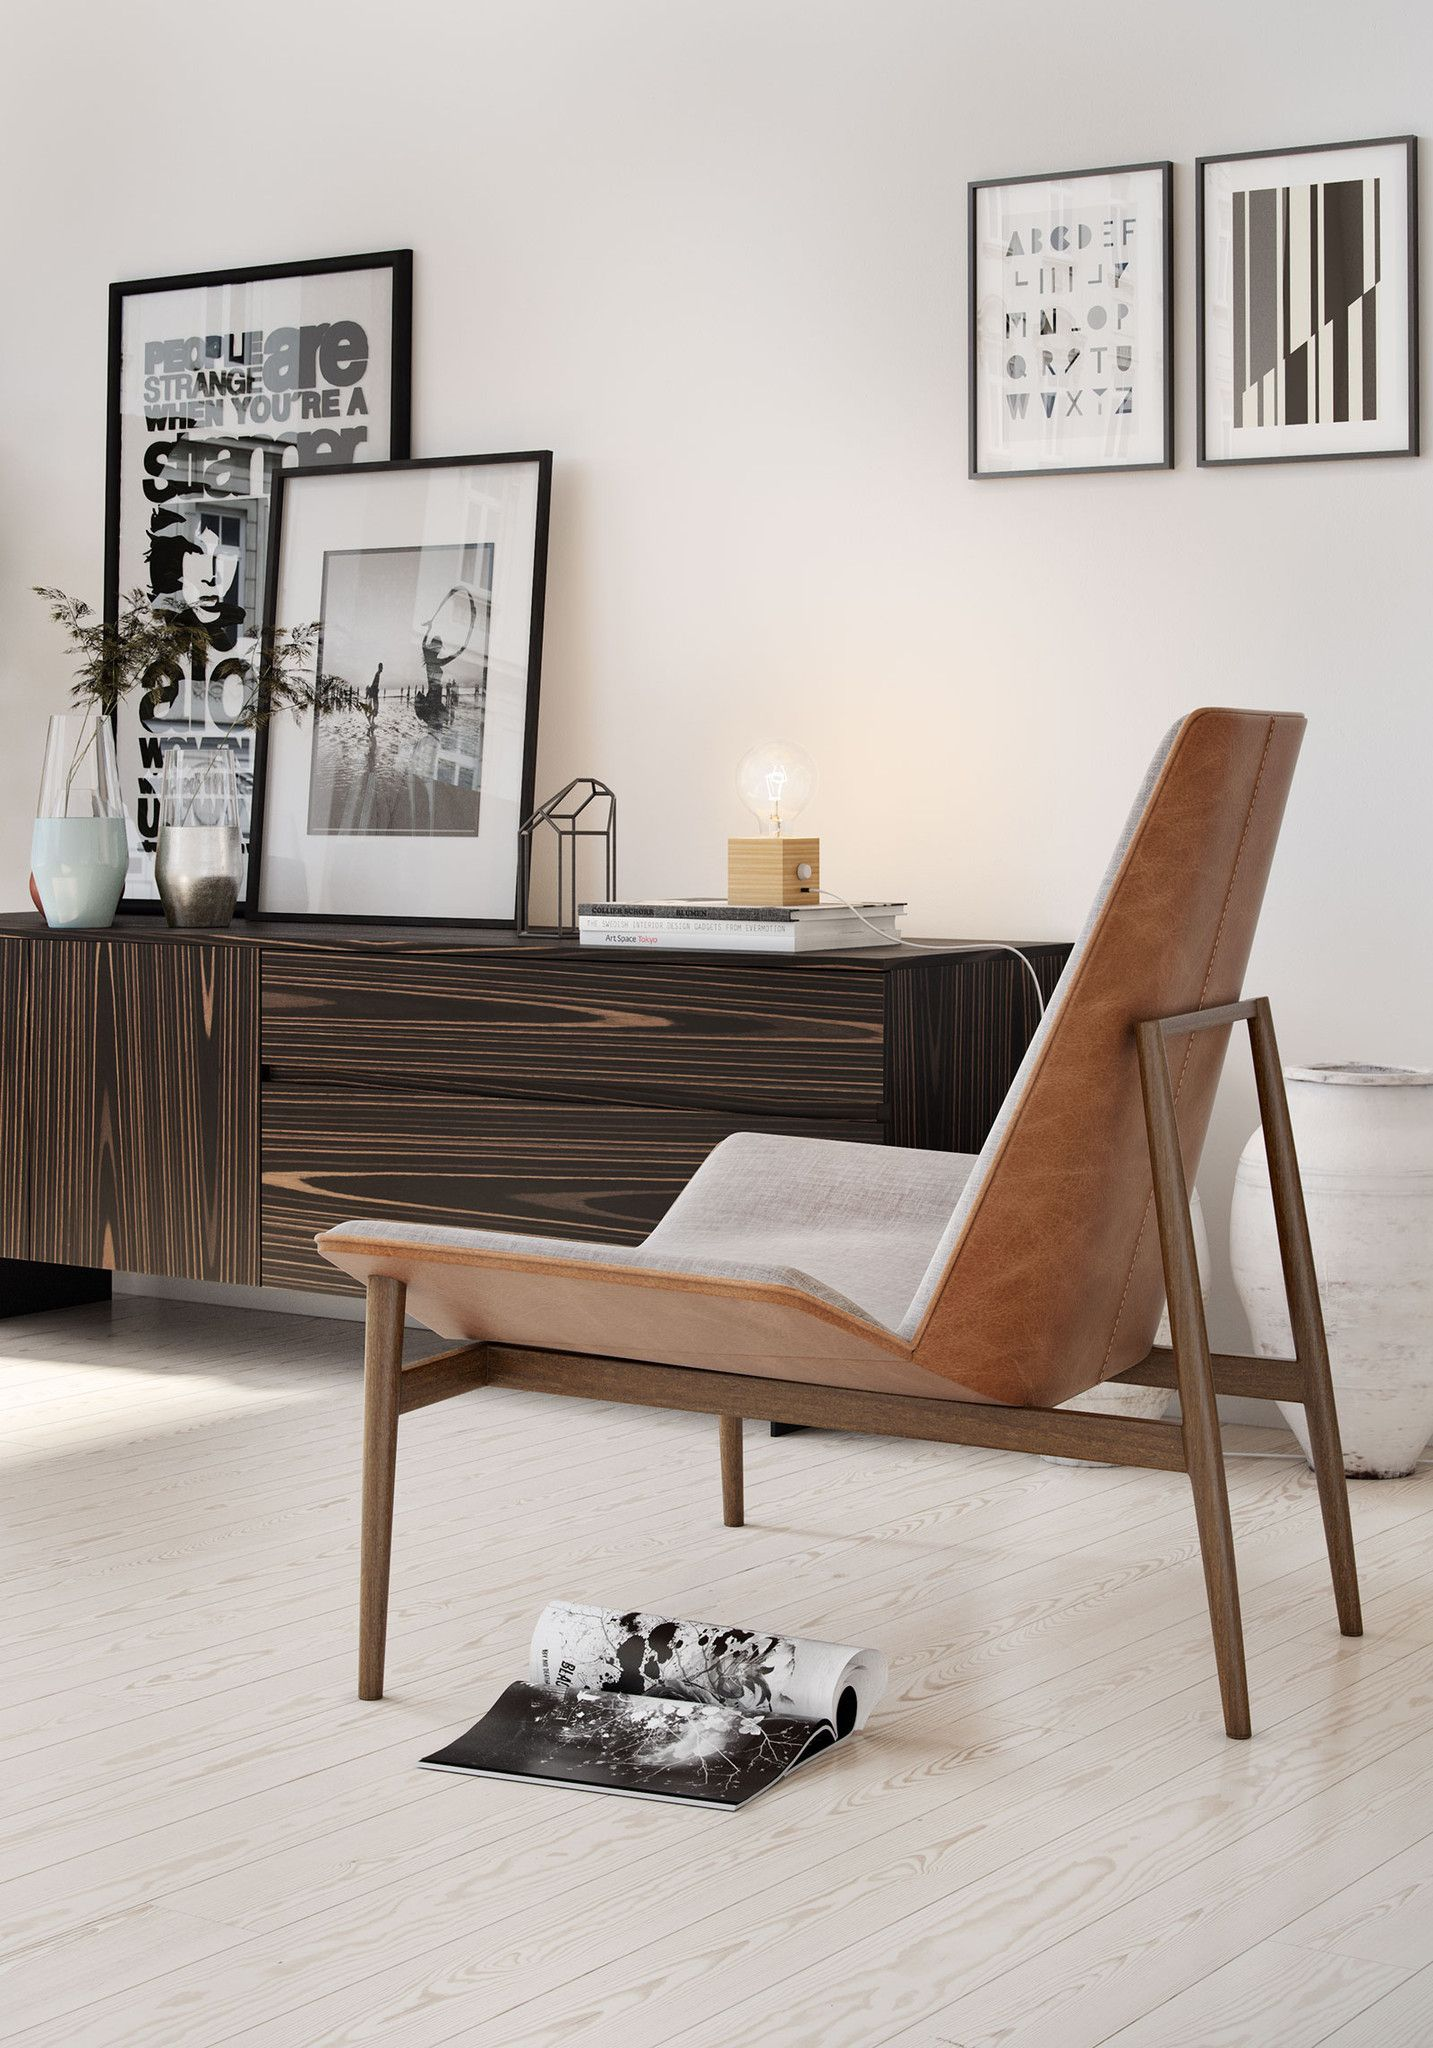 The geometric angles of the kent lounge chair give it the austere air of minimalist design yet the comfort padding on the seat and tapered back